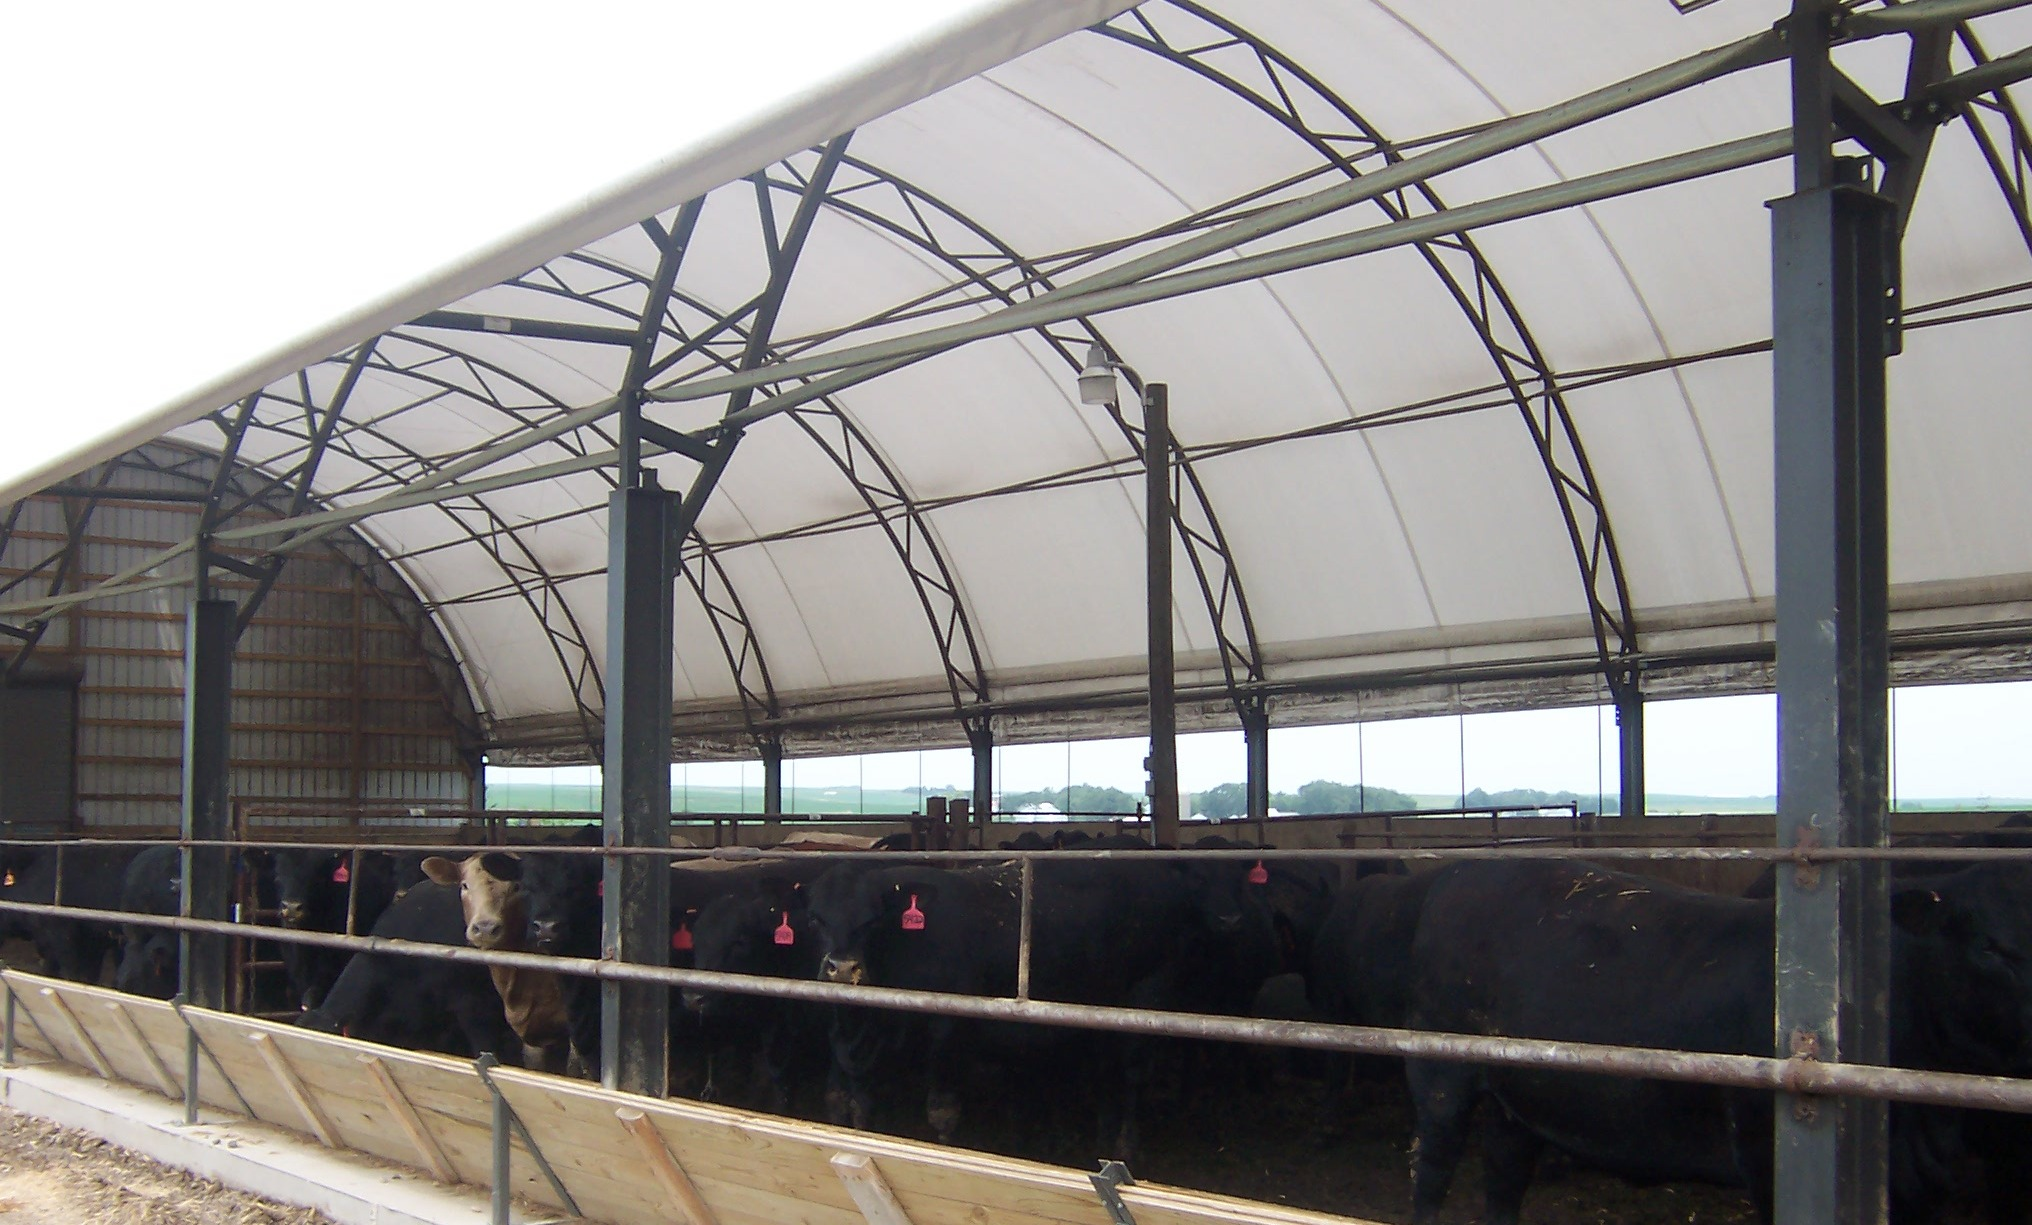 Cattle Show Barns http://news.iowapublicradio.org/post/hoop-barns-protect-cattle-heat